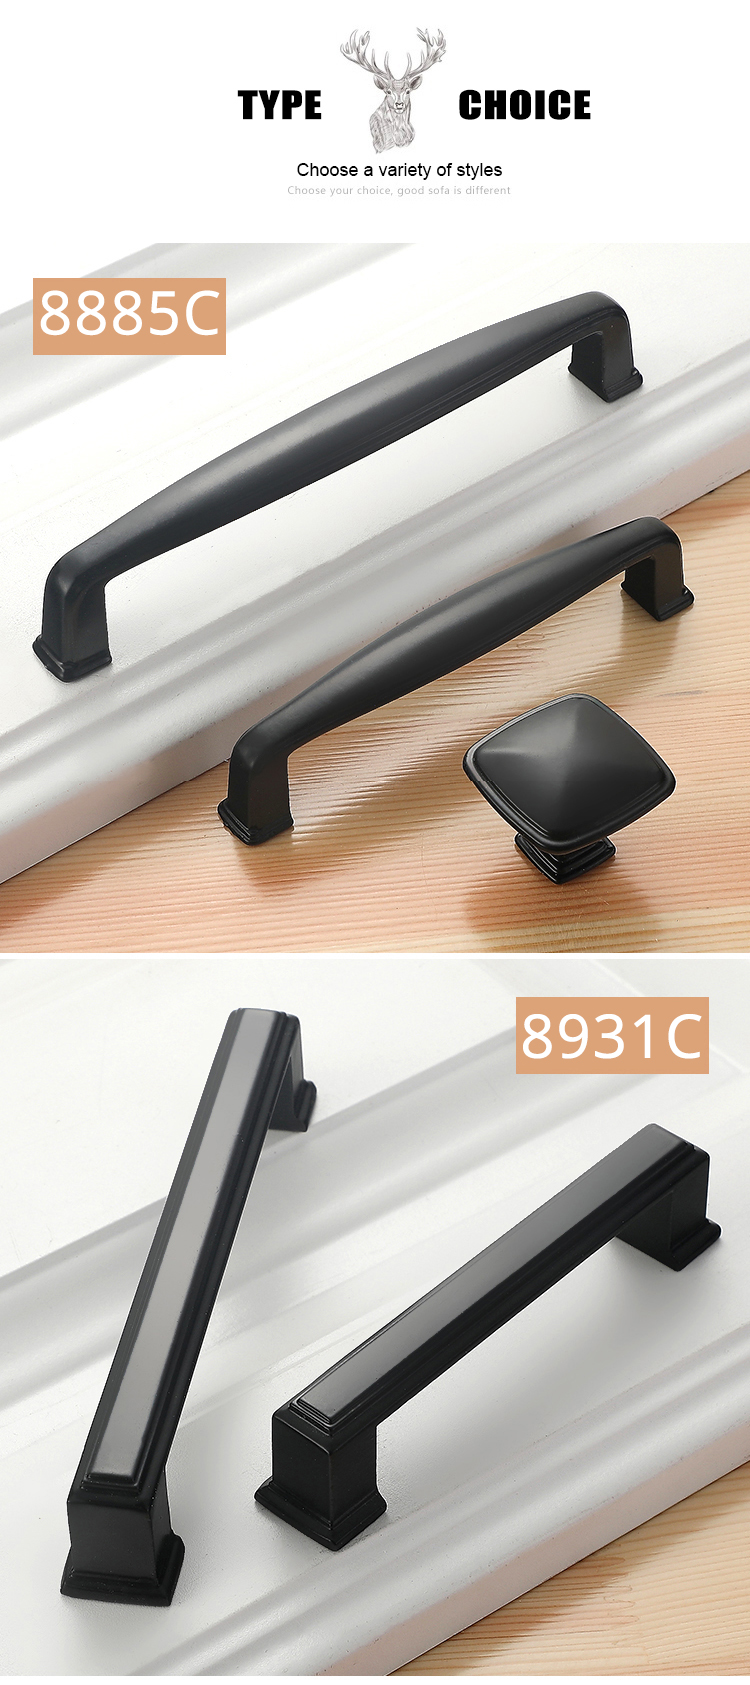 Ha7ae53bf97684264bb37147221b9acb2l - American Style Black Cabinet Handles Solid Aluminum Alloy Kitchen Cupboard Pulls Drawer Knobs Furniture Handle Hardware